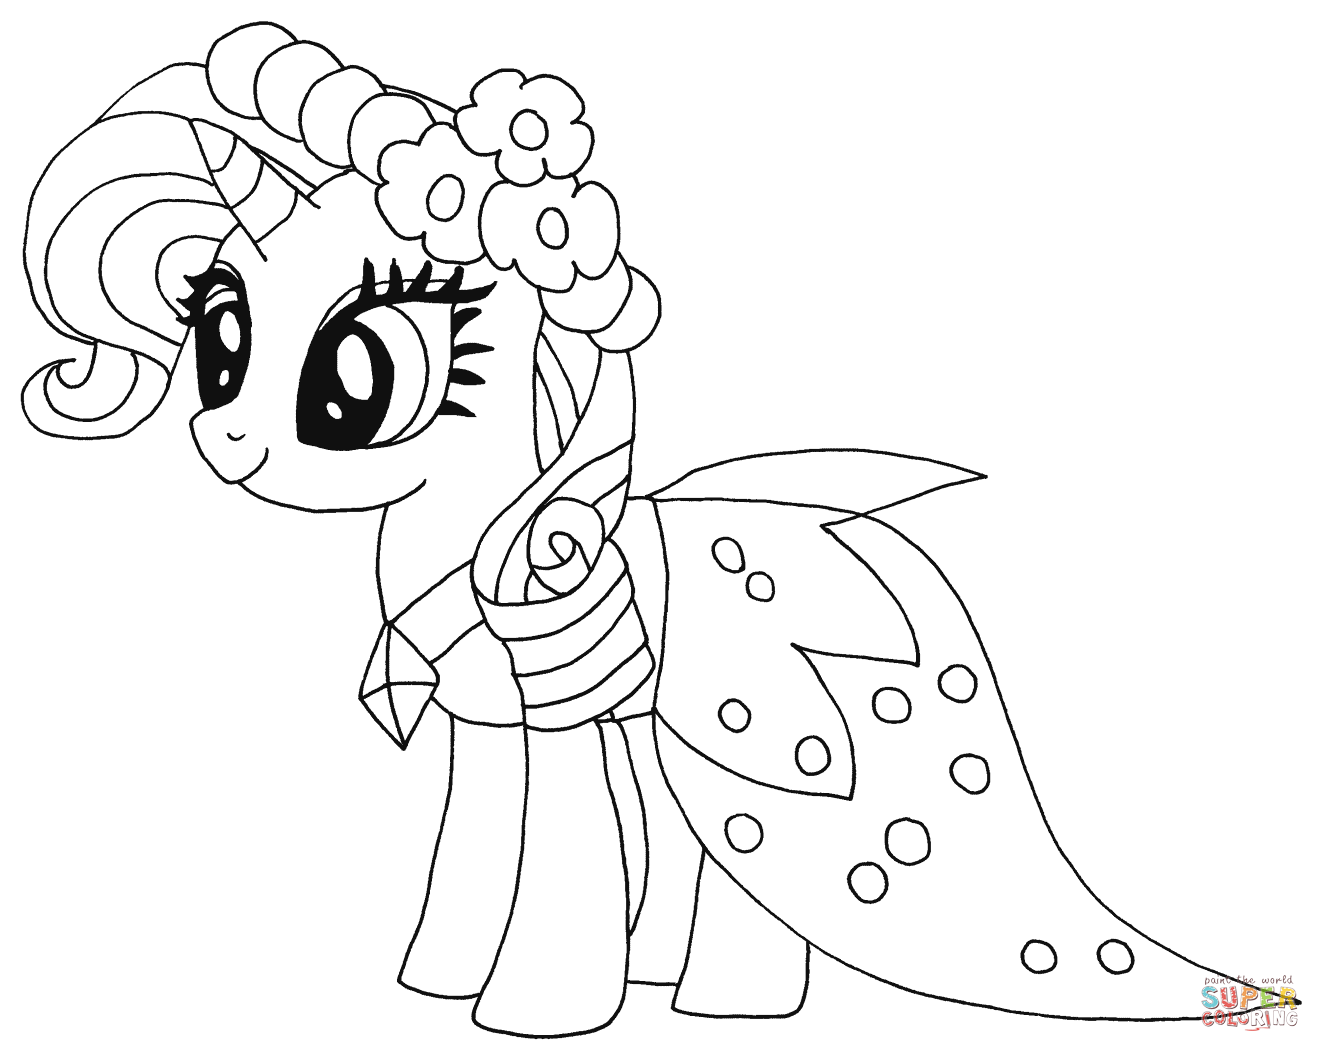 Hard My Little Pony Coloring Pages : Princess rarity from my little pony coloring page